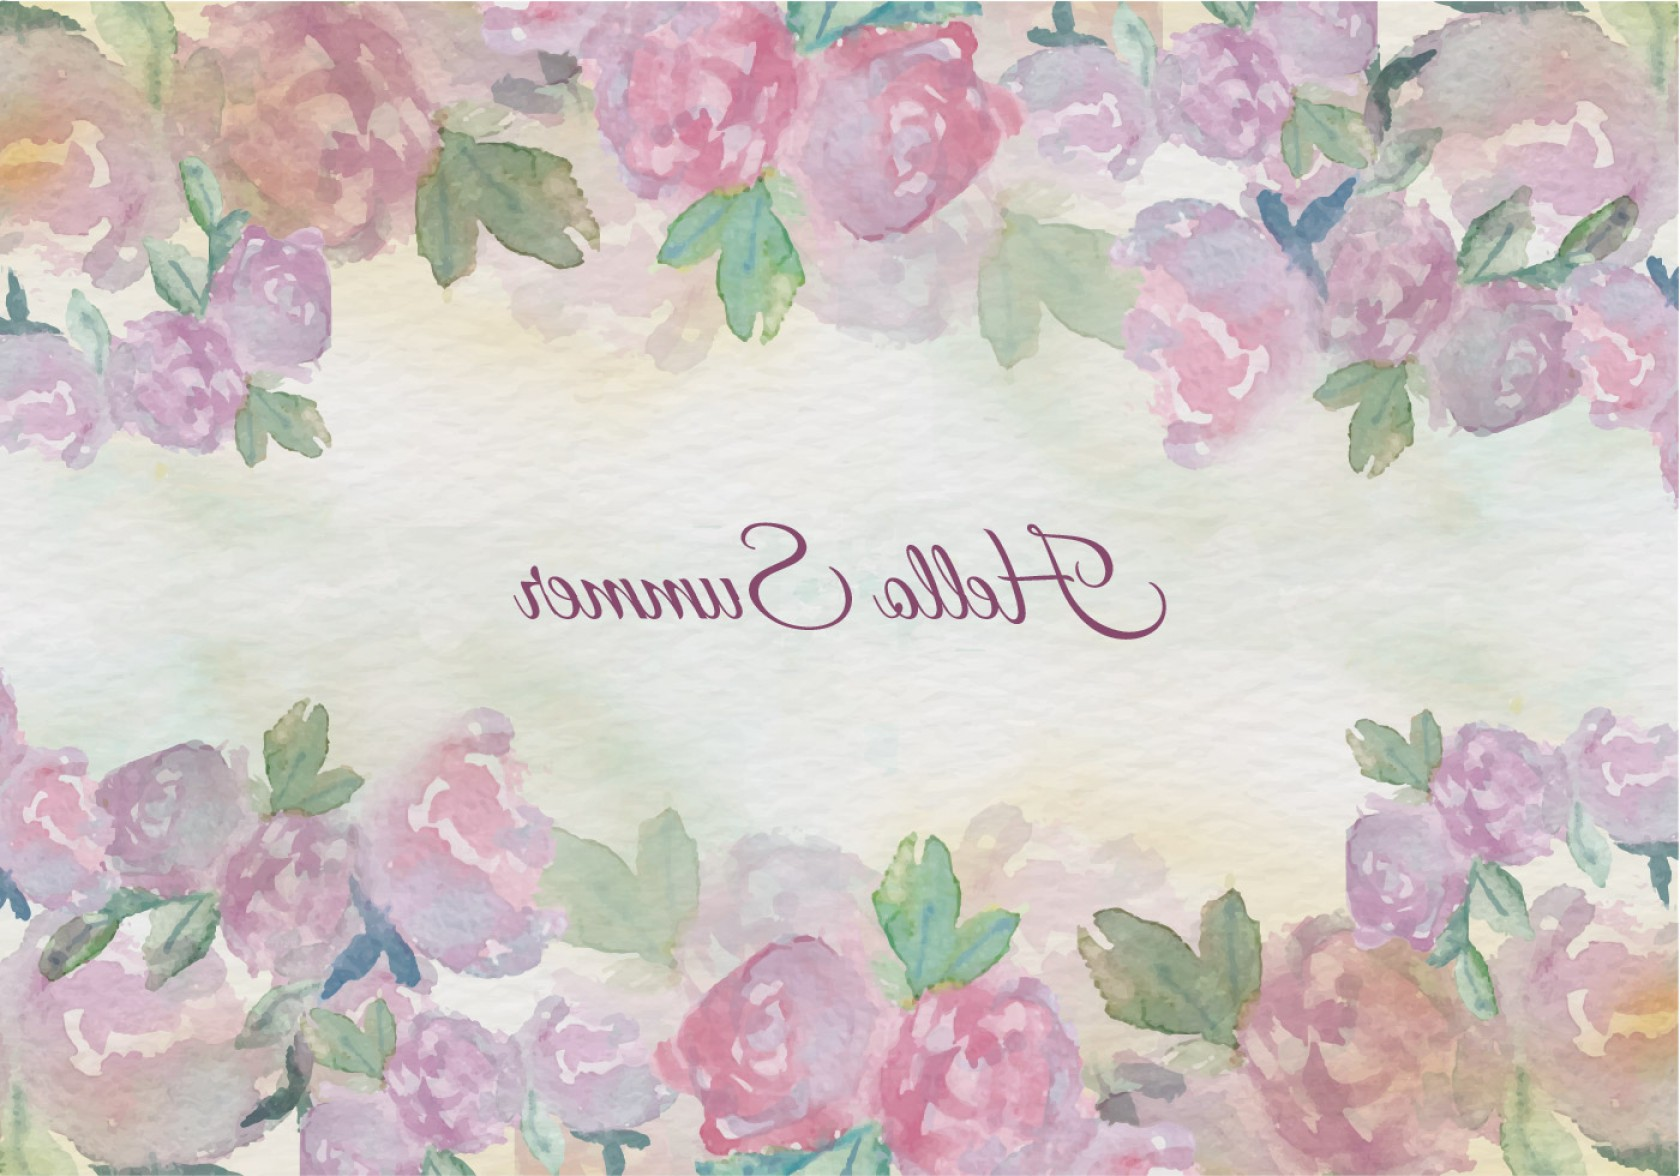 Summer Wreath Free Vector Watercolor: Free Vector Watercolor Summer Floral Vintage Illustration